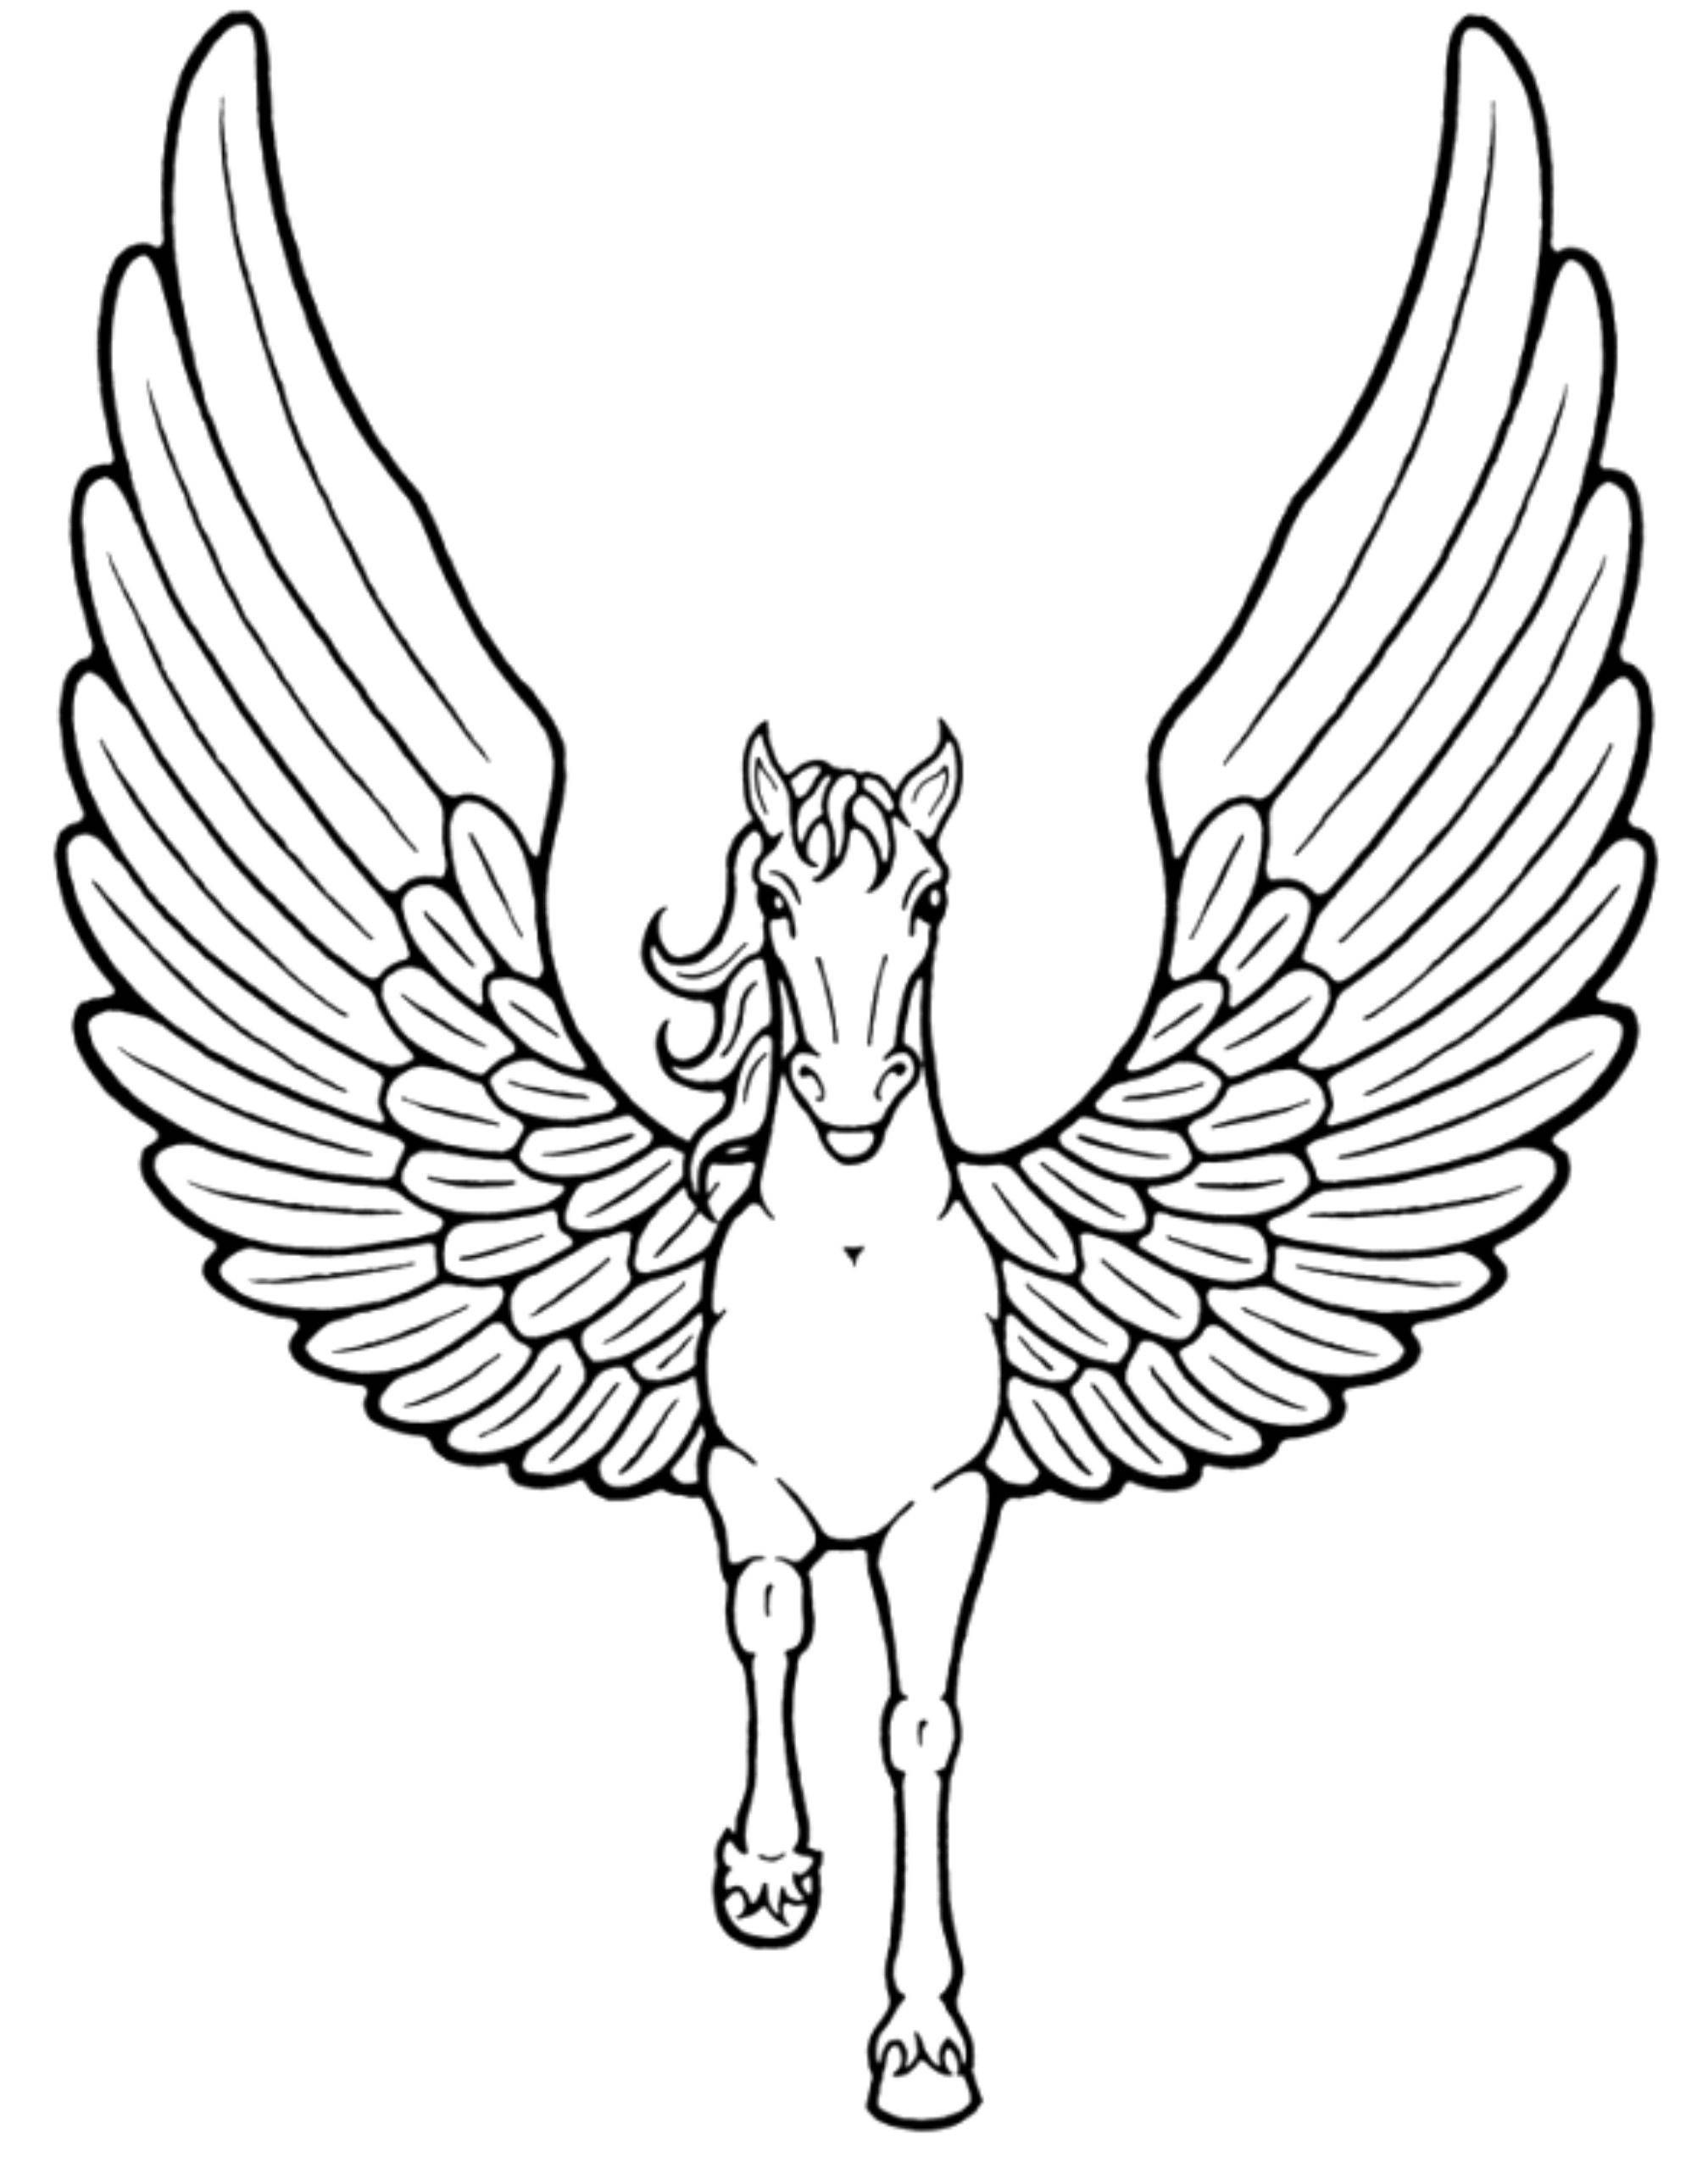 Easy Unicorn Coloring Pages - Printable Kids Colouring ...